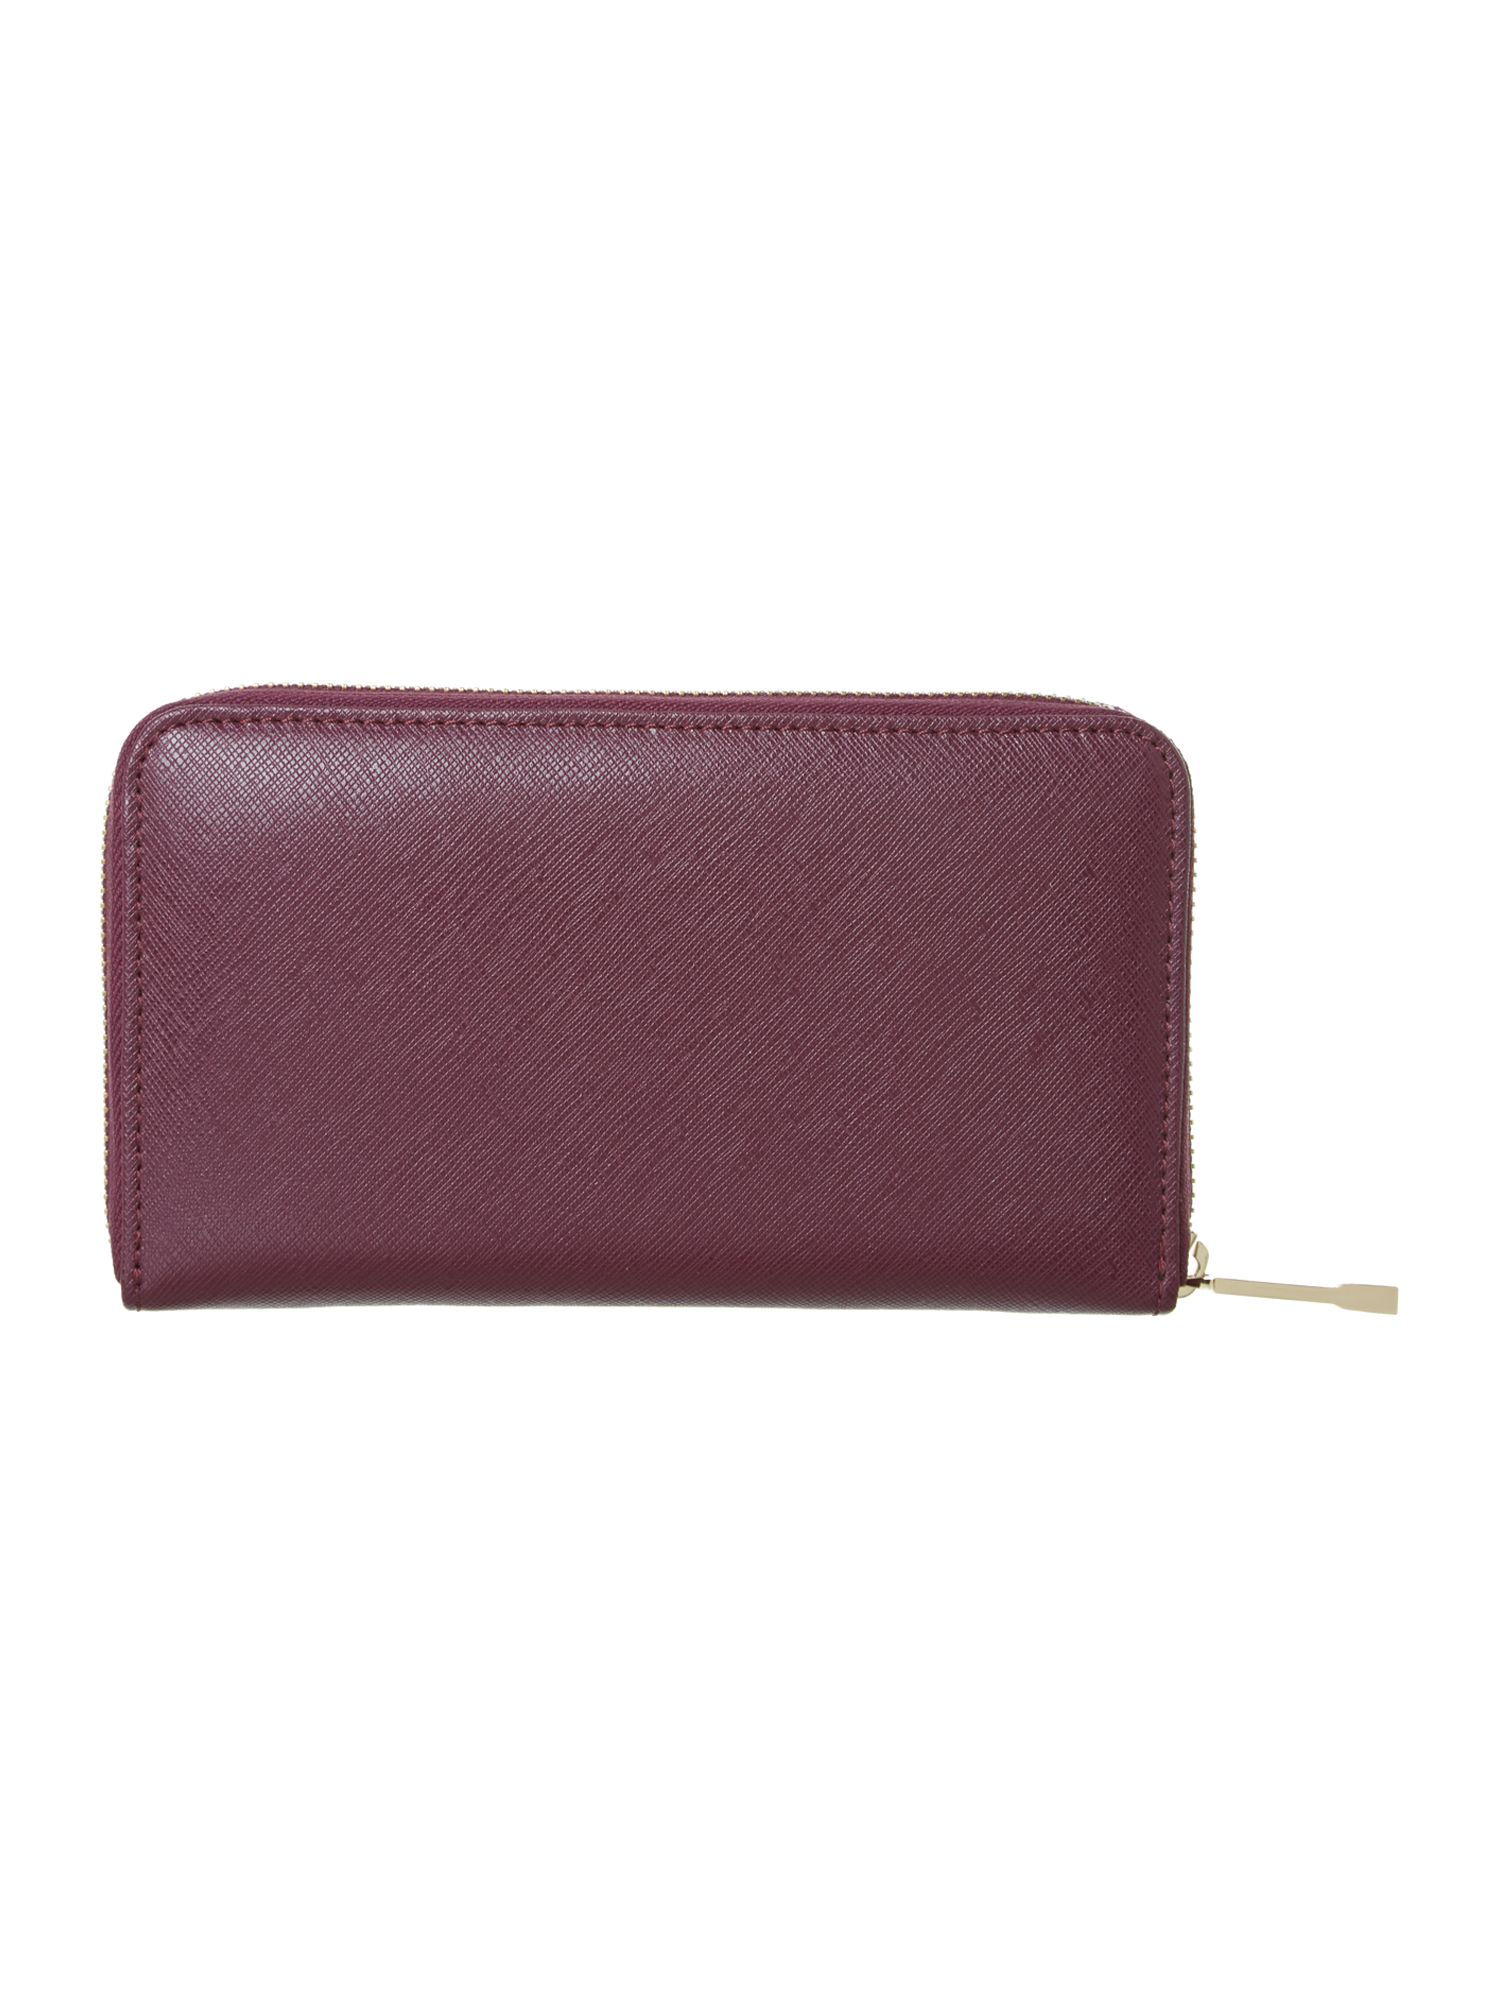 Purple large zip around purse